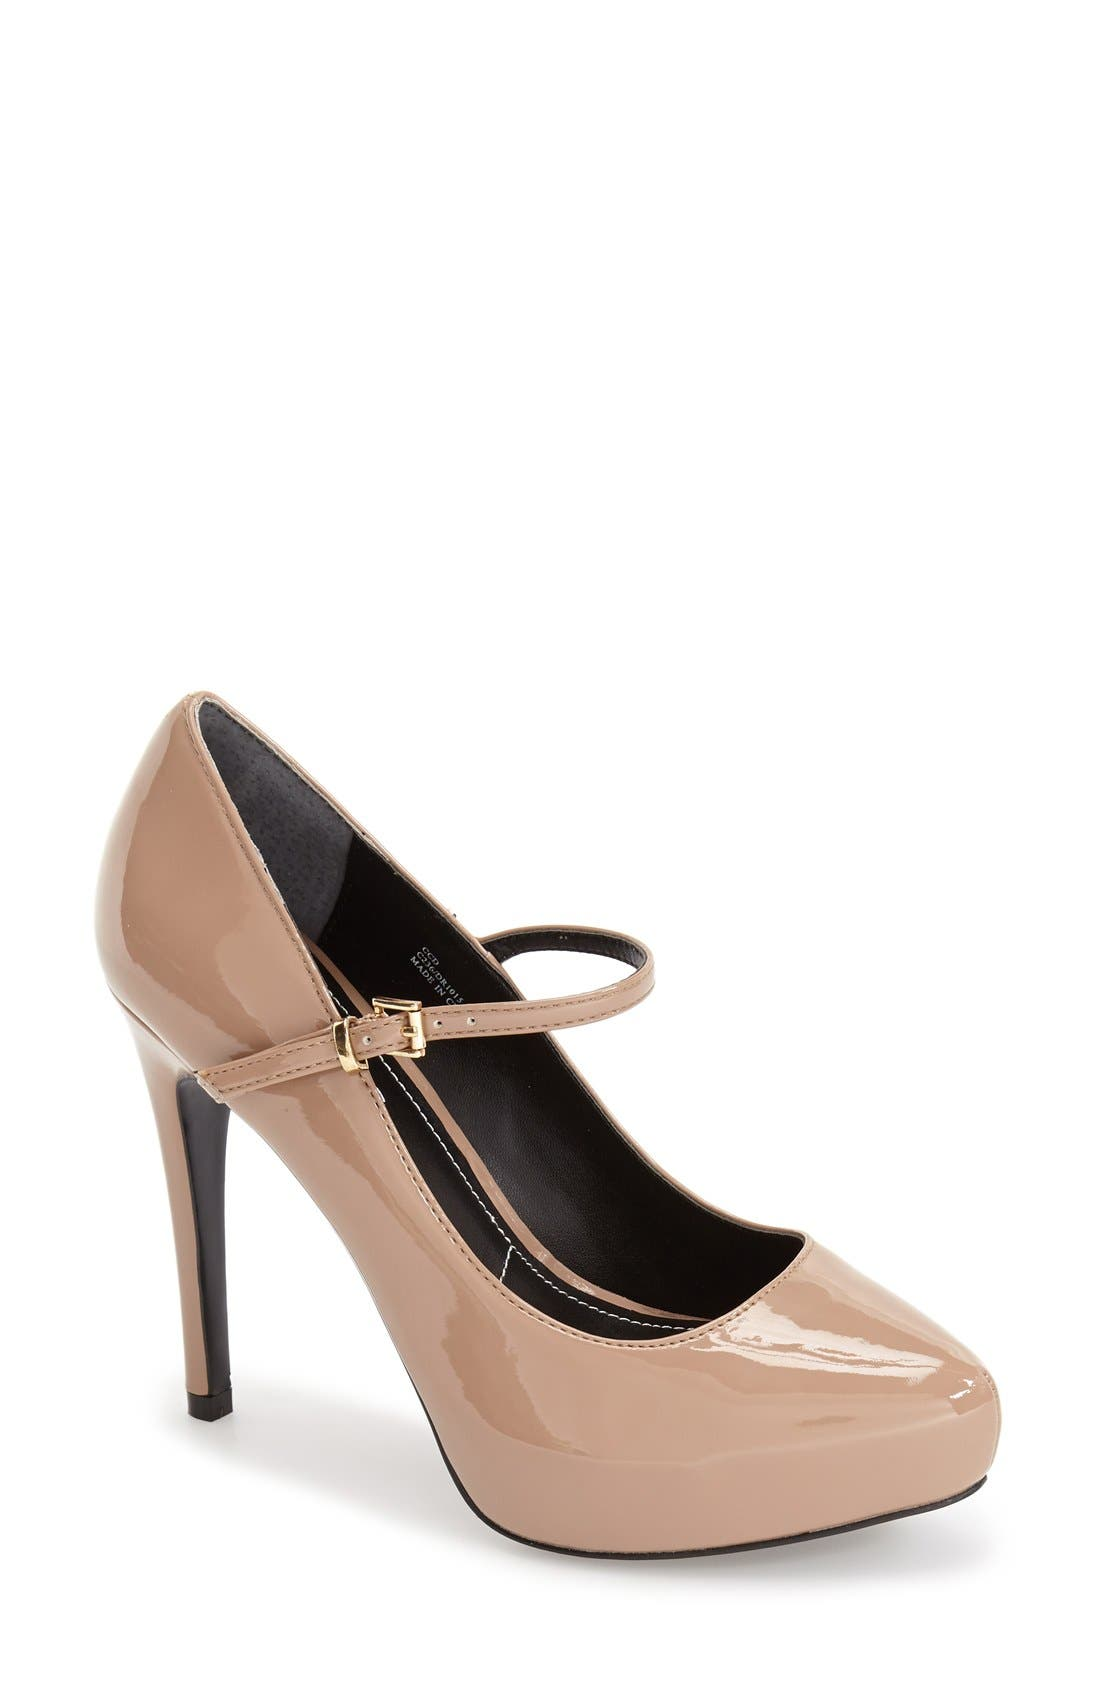 Alternate Image 1 Selected - Charles by Charles David 'Faye' Mary Jane Platform Pump (Women)